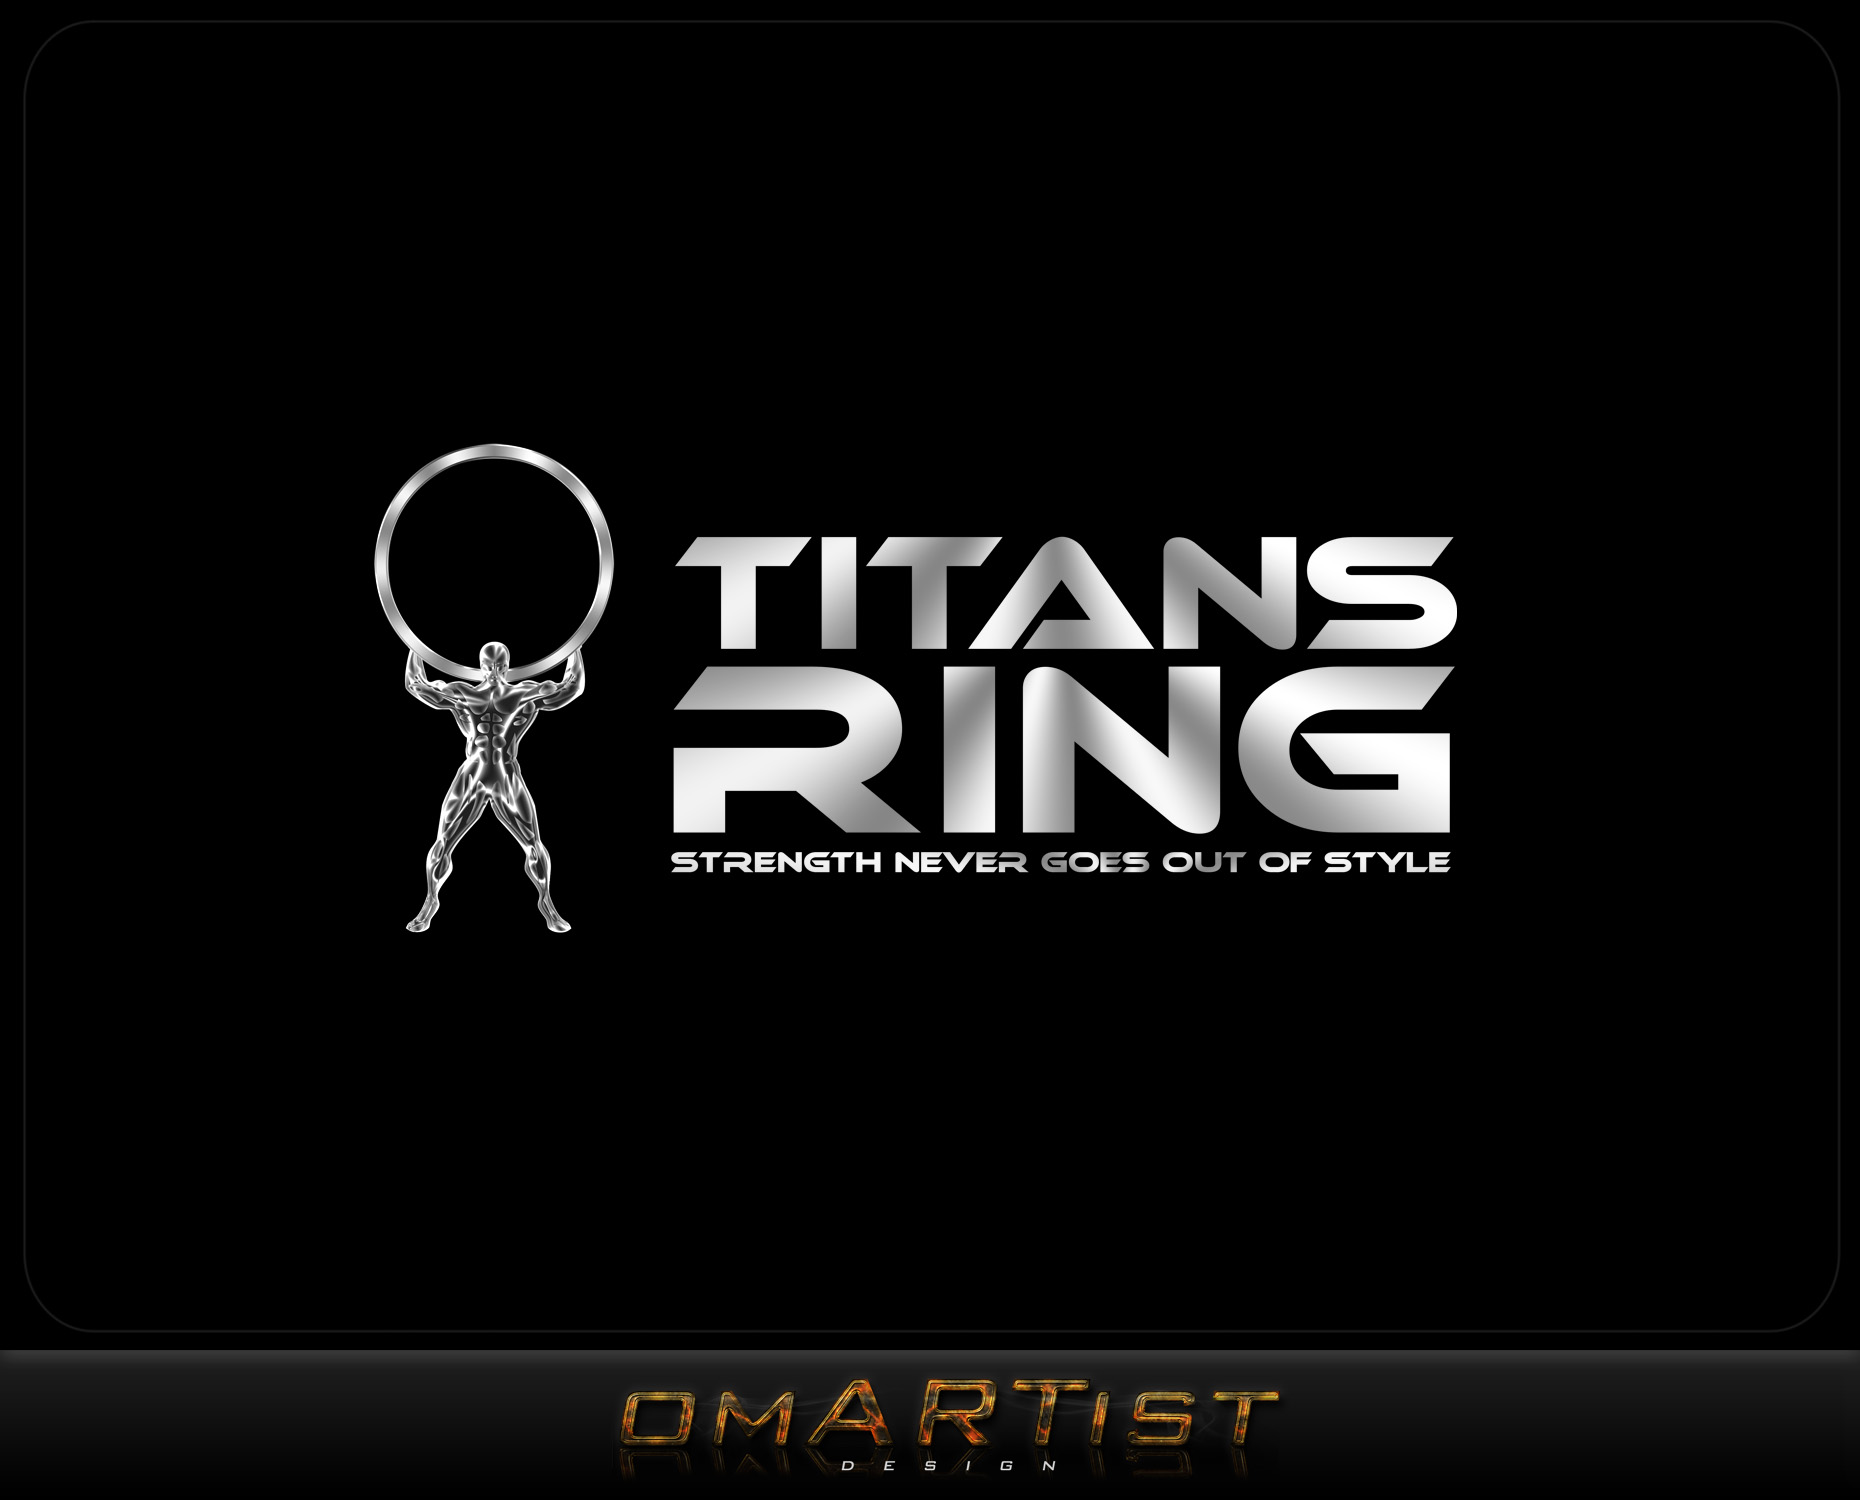 Logo Design by omARTist - Entry No. 20 in the Logo Design Contest Inspiring Logo Design for Titans Ring.